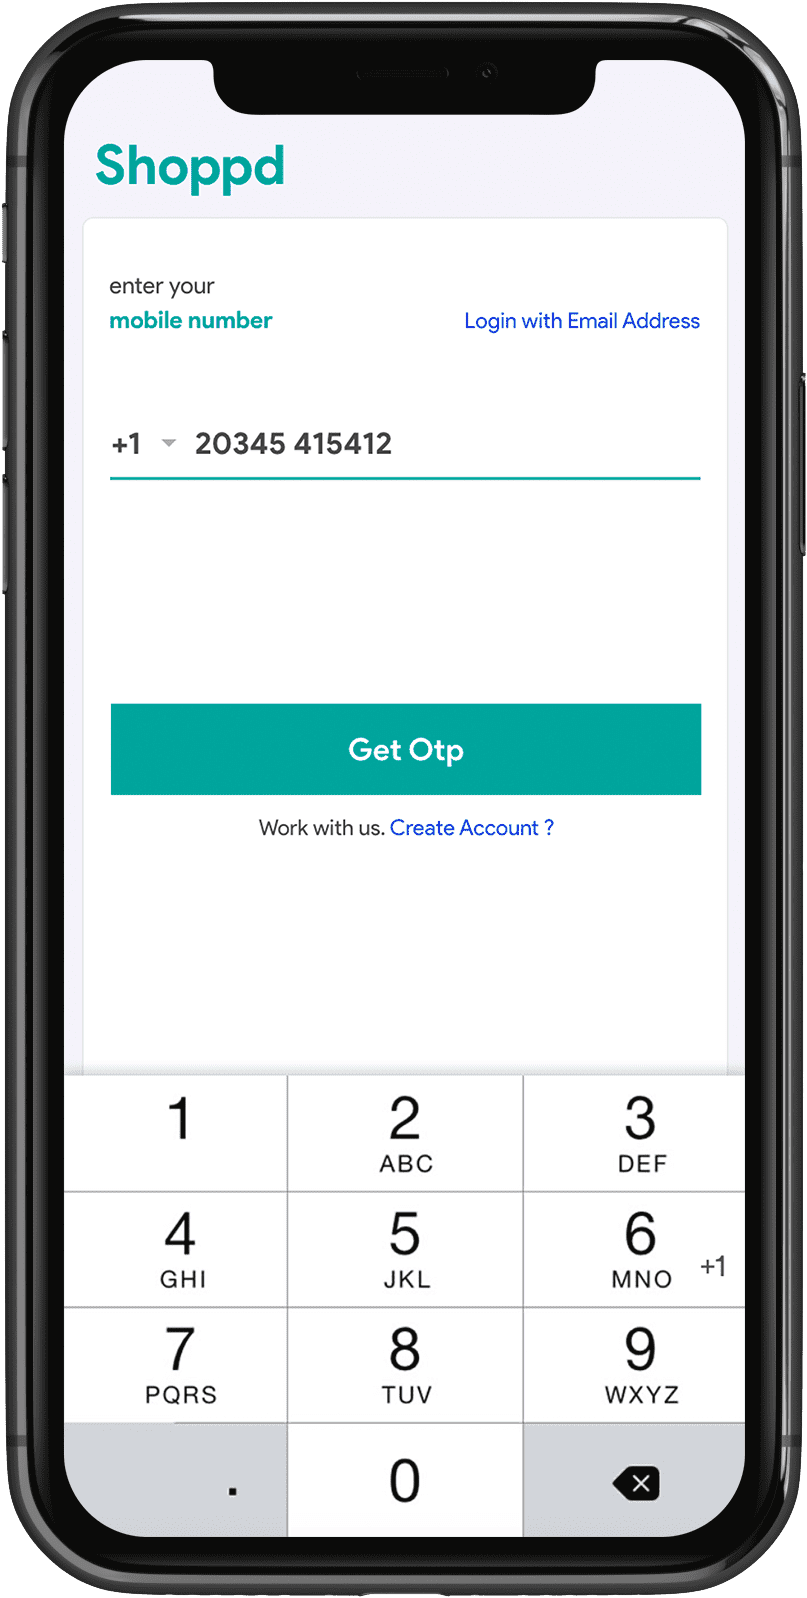 login-with-mobile-number-in-food-delivery-driver-app.png